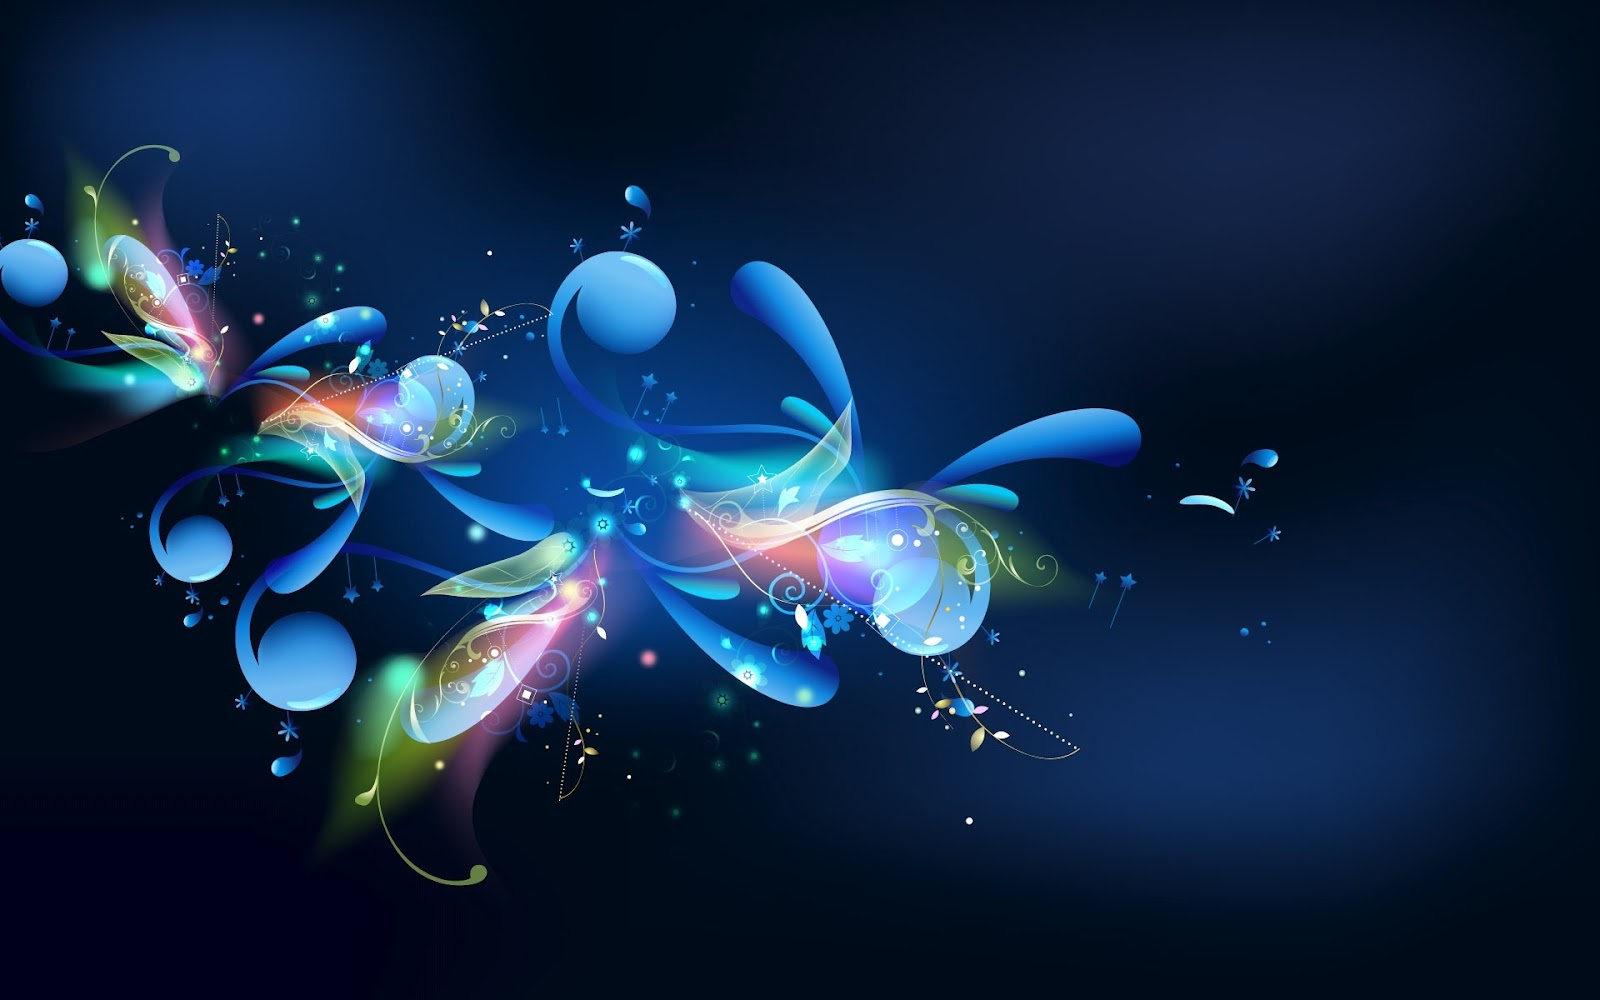 windows 8 wallpaper hd With Resolutions 1600×1000 Pixel